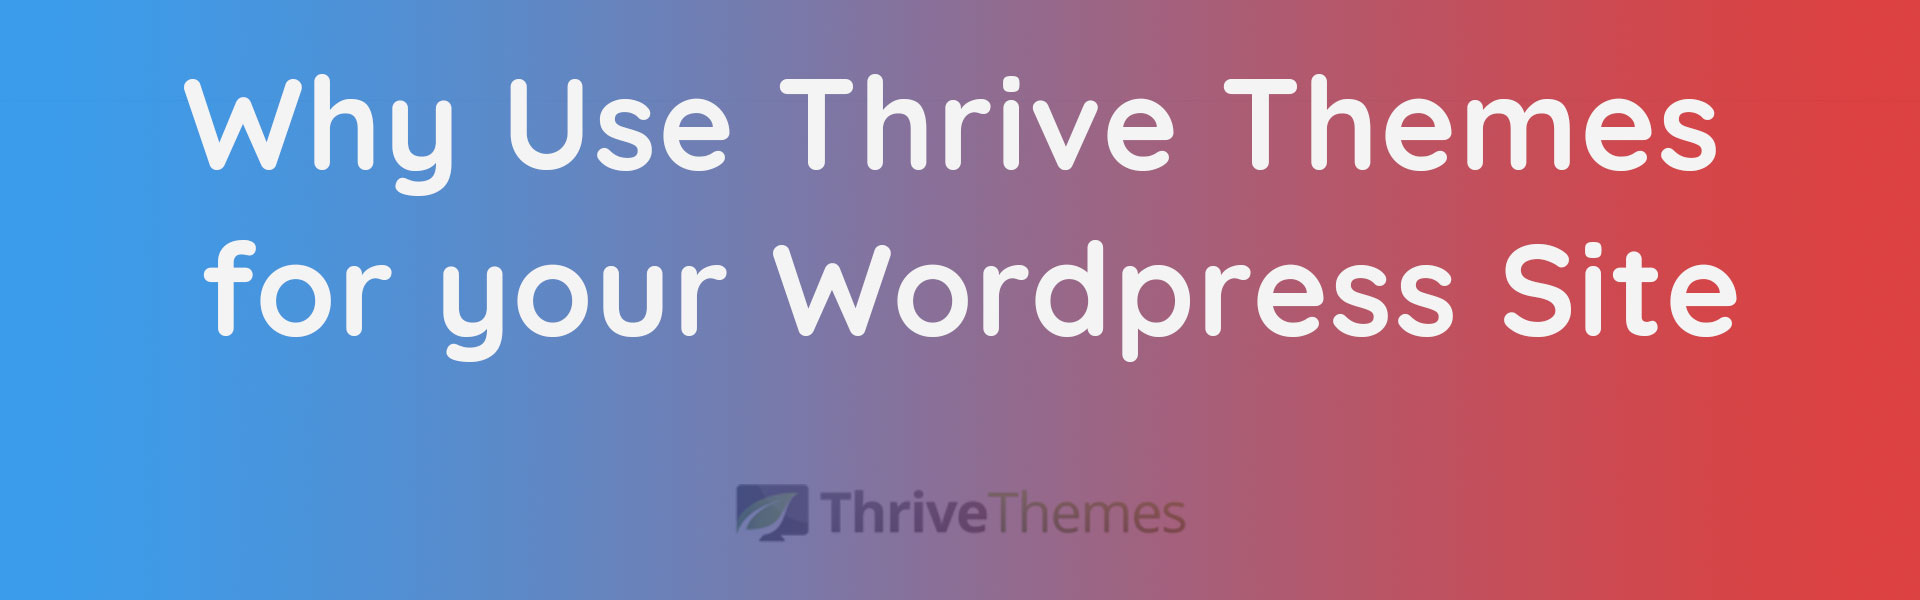 Price In Euro WordPress Themes Thrive Themes